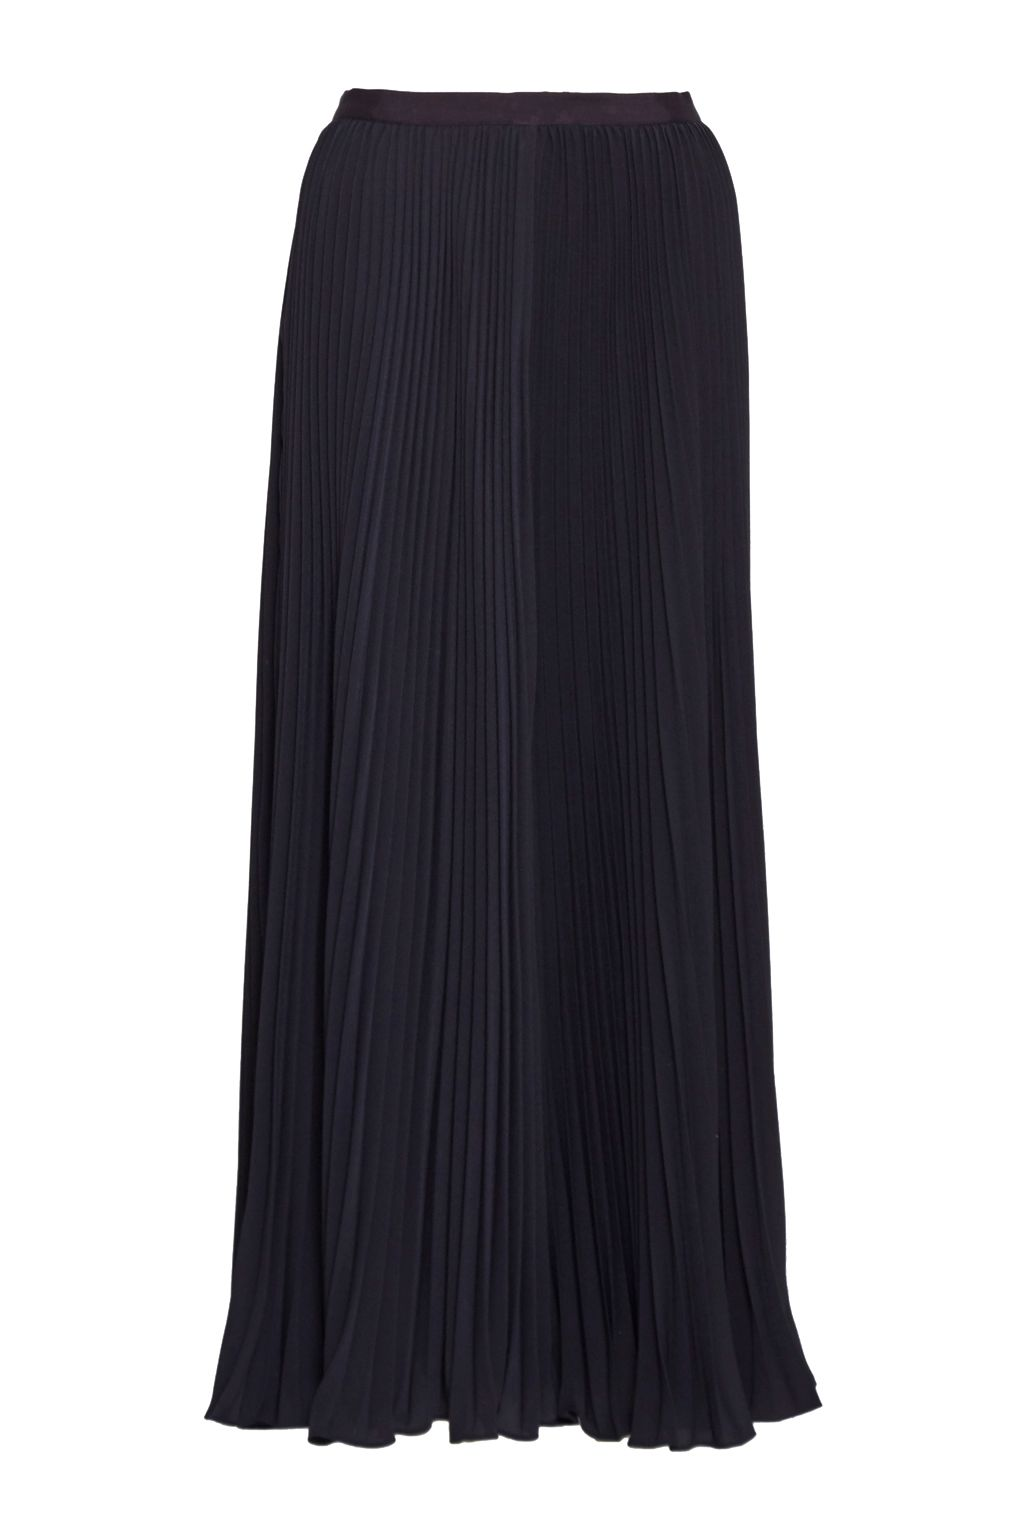 French Connection Classic Crepe Pleated Maxi Skirt, Blue